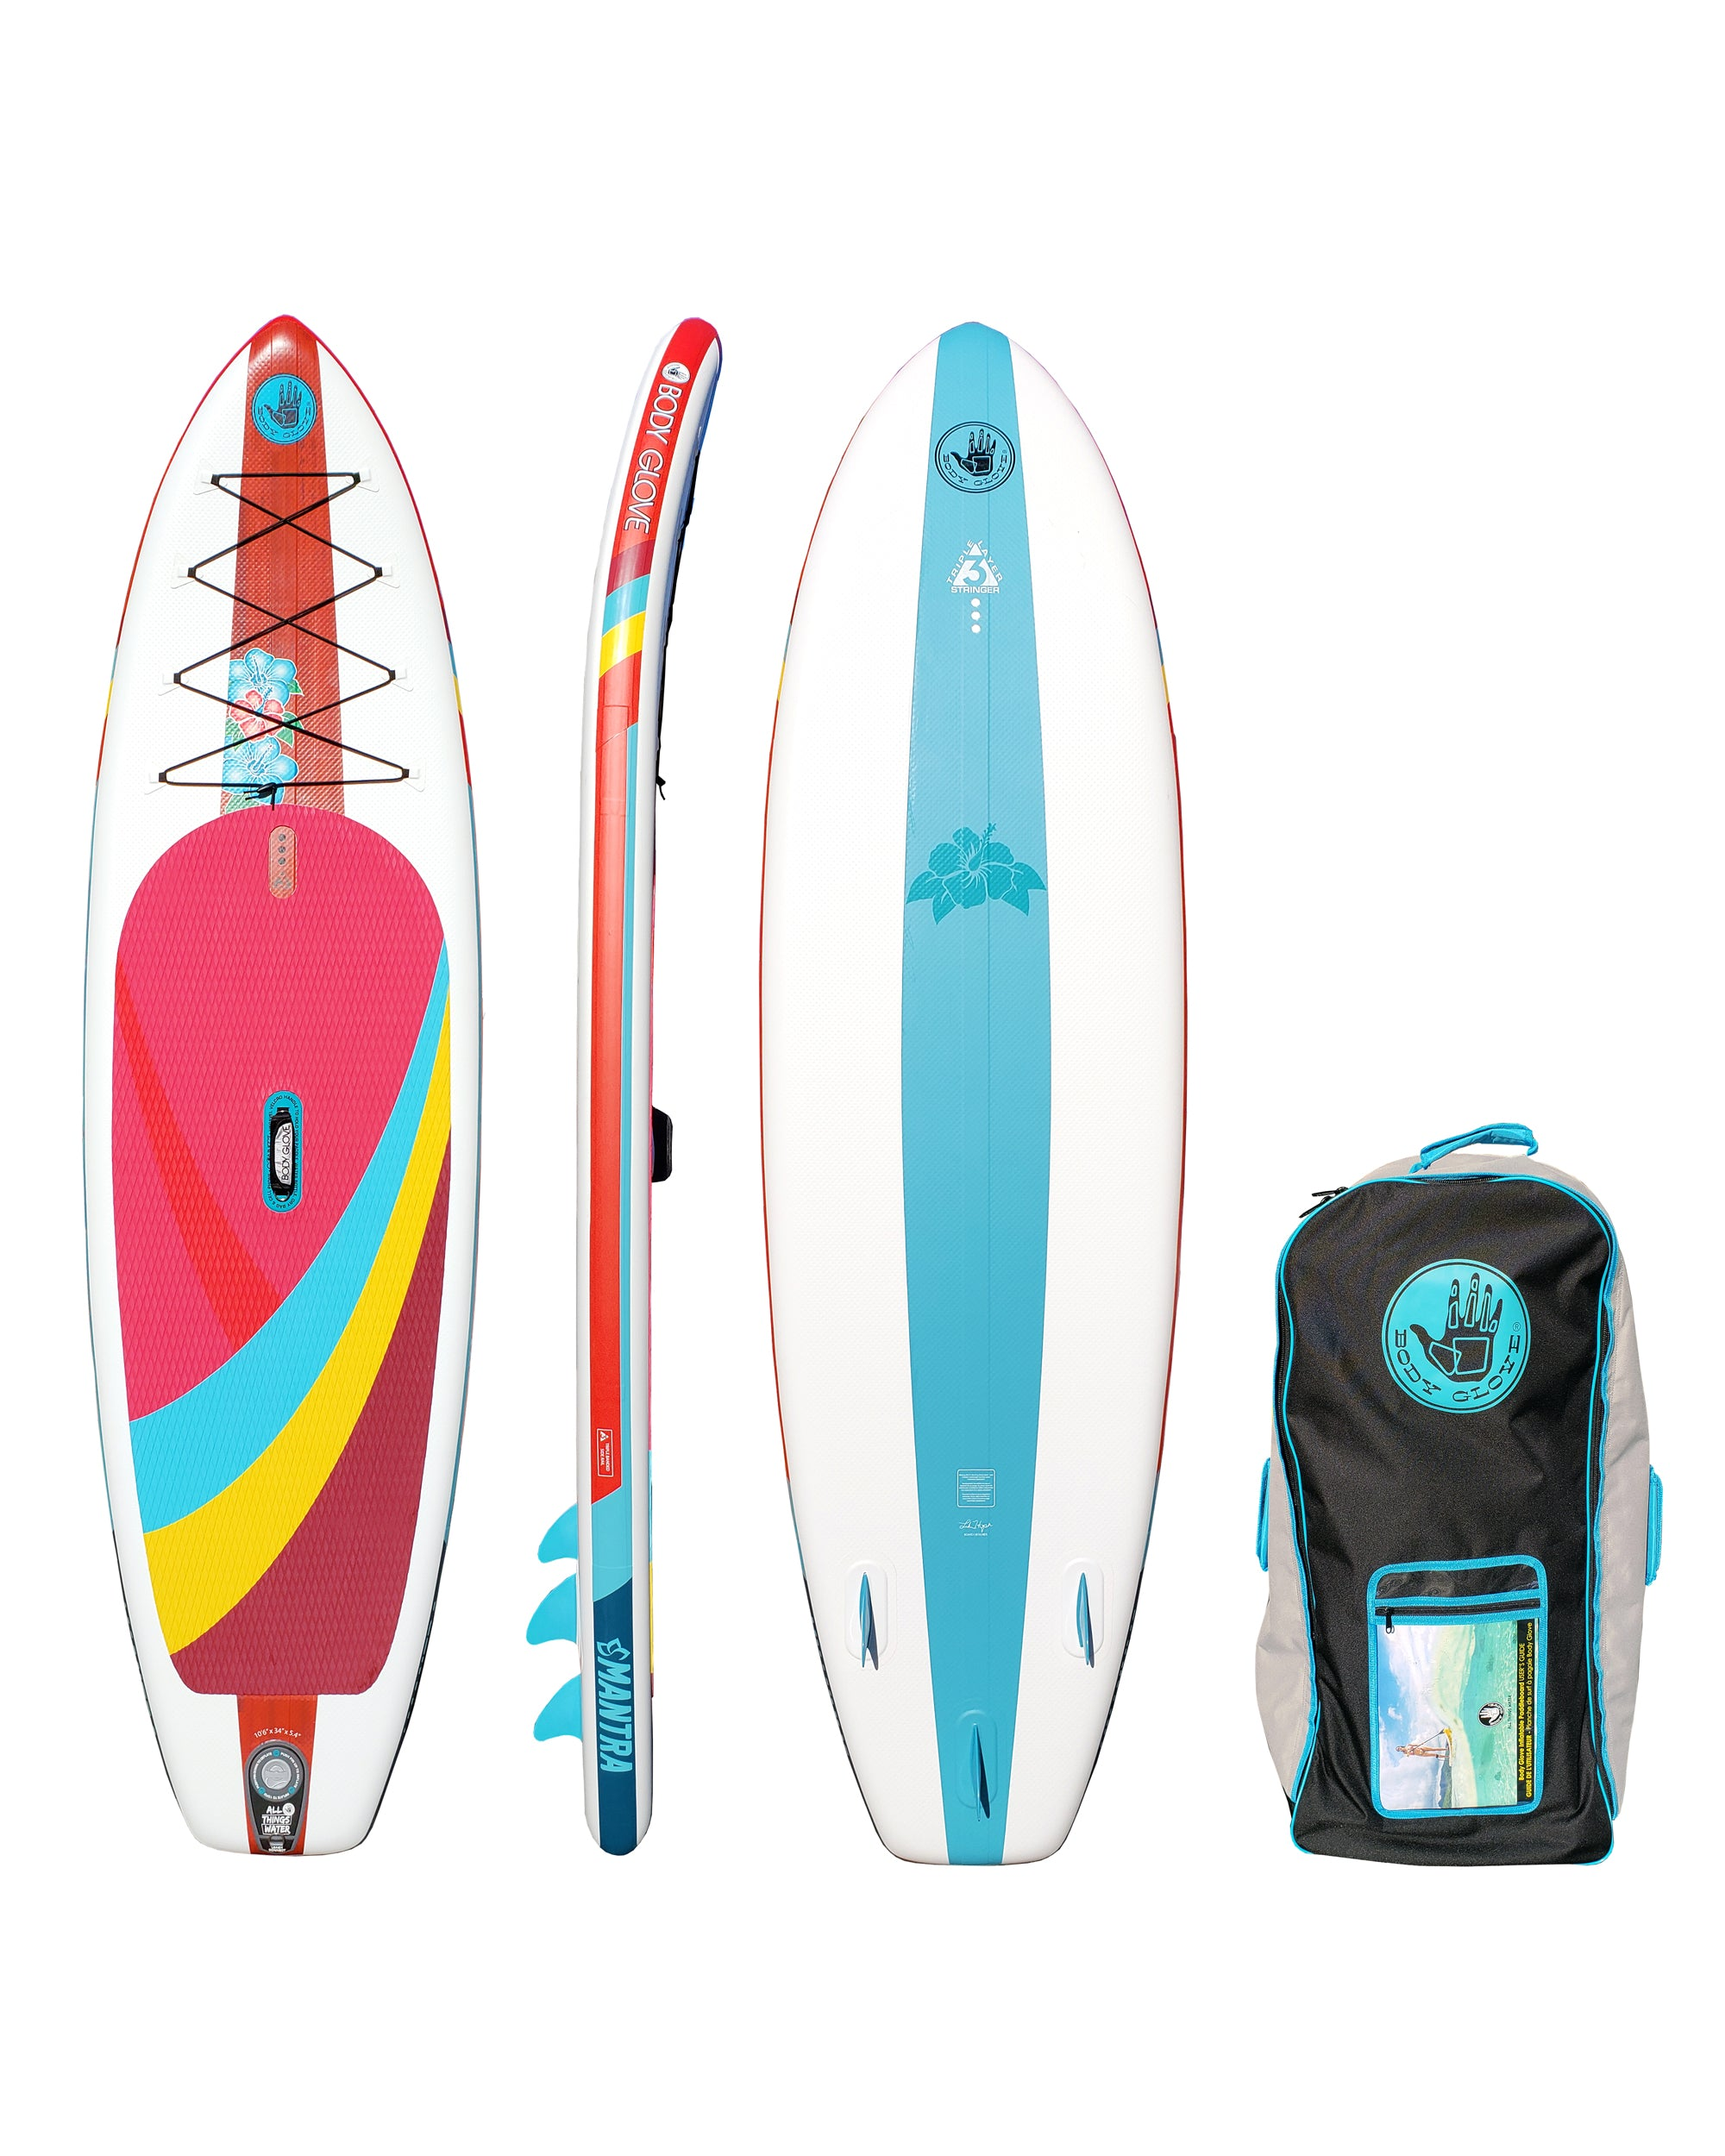 "Mantra 10'6"" Inflatable Paddle Board Package"